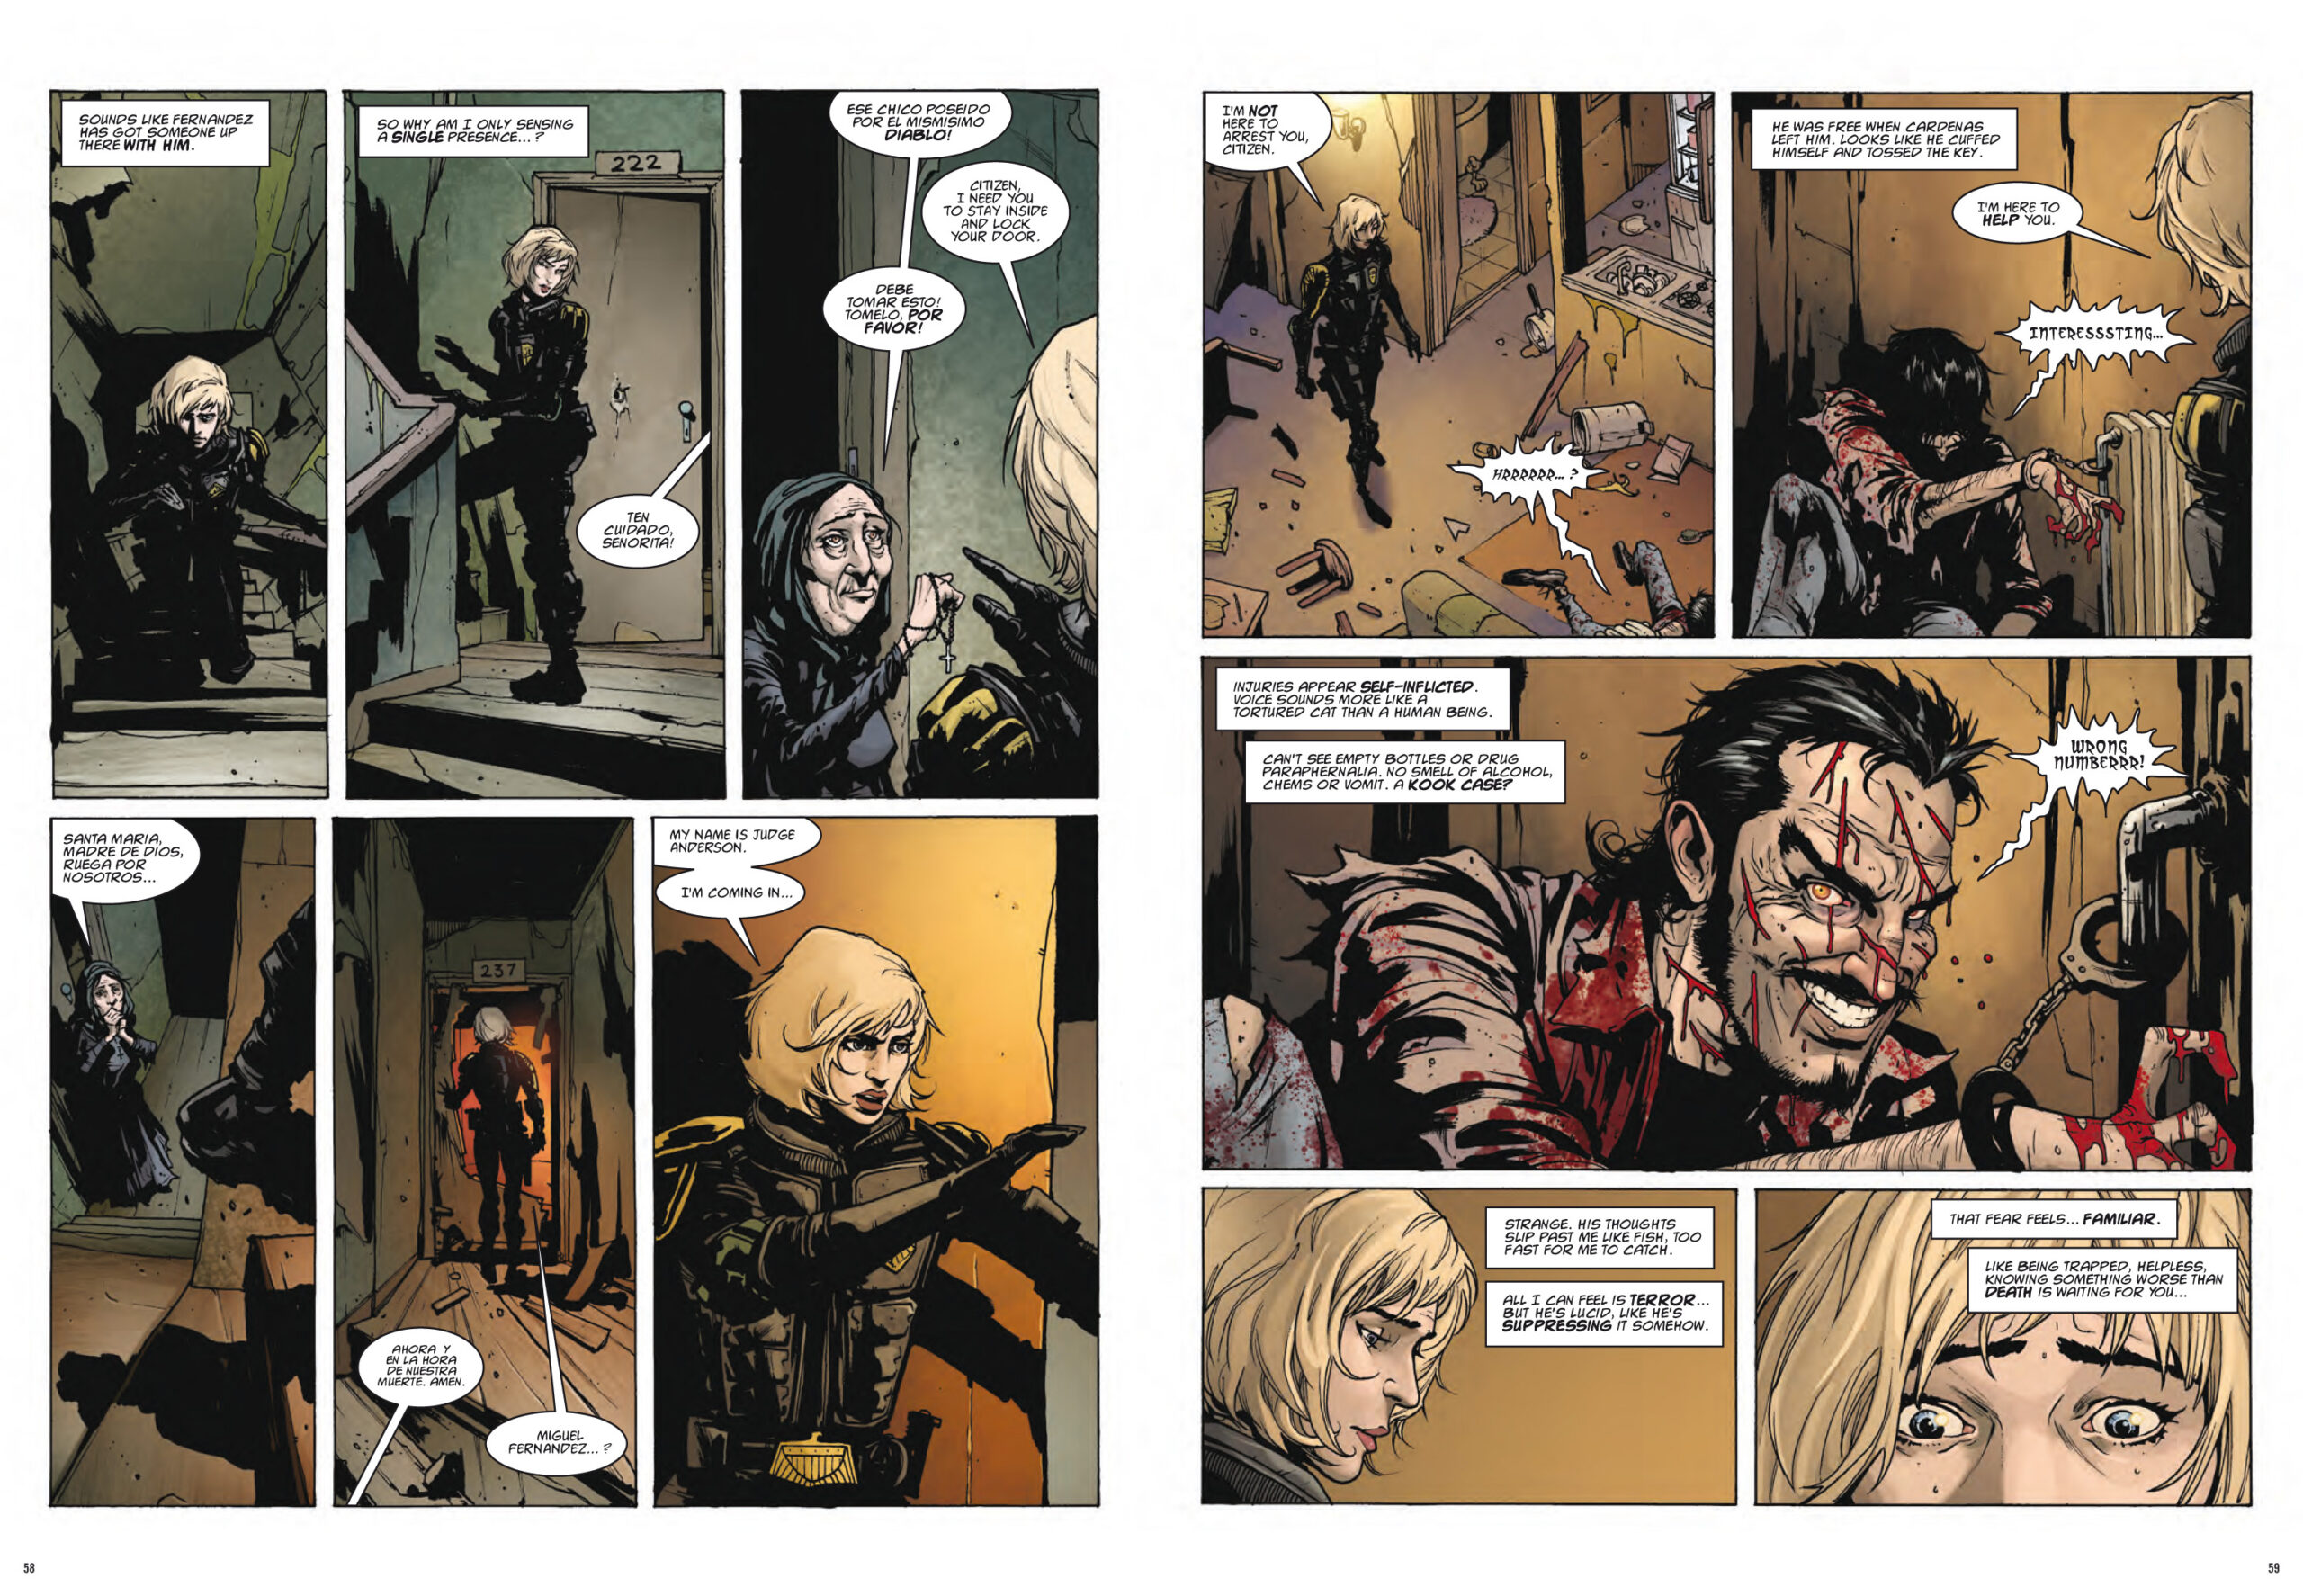 OUT NOW - Dredd/Anderson: The Deep End